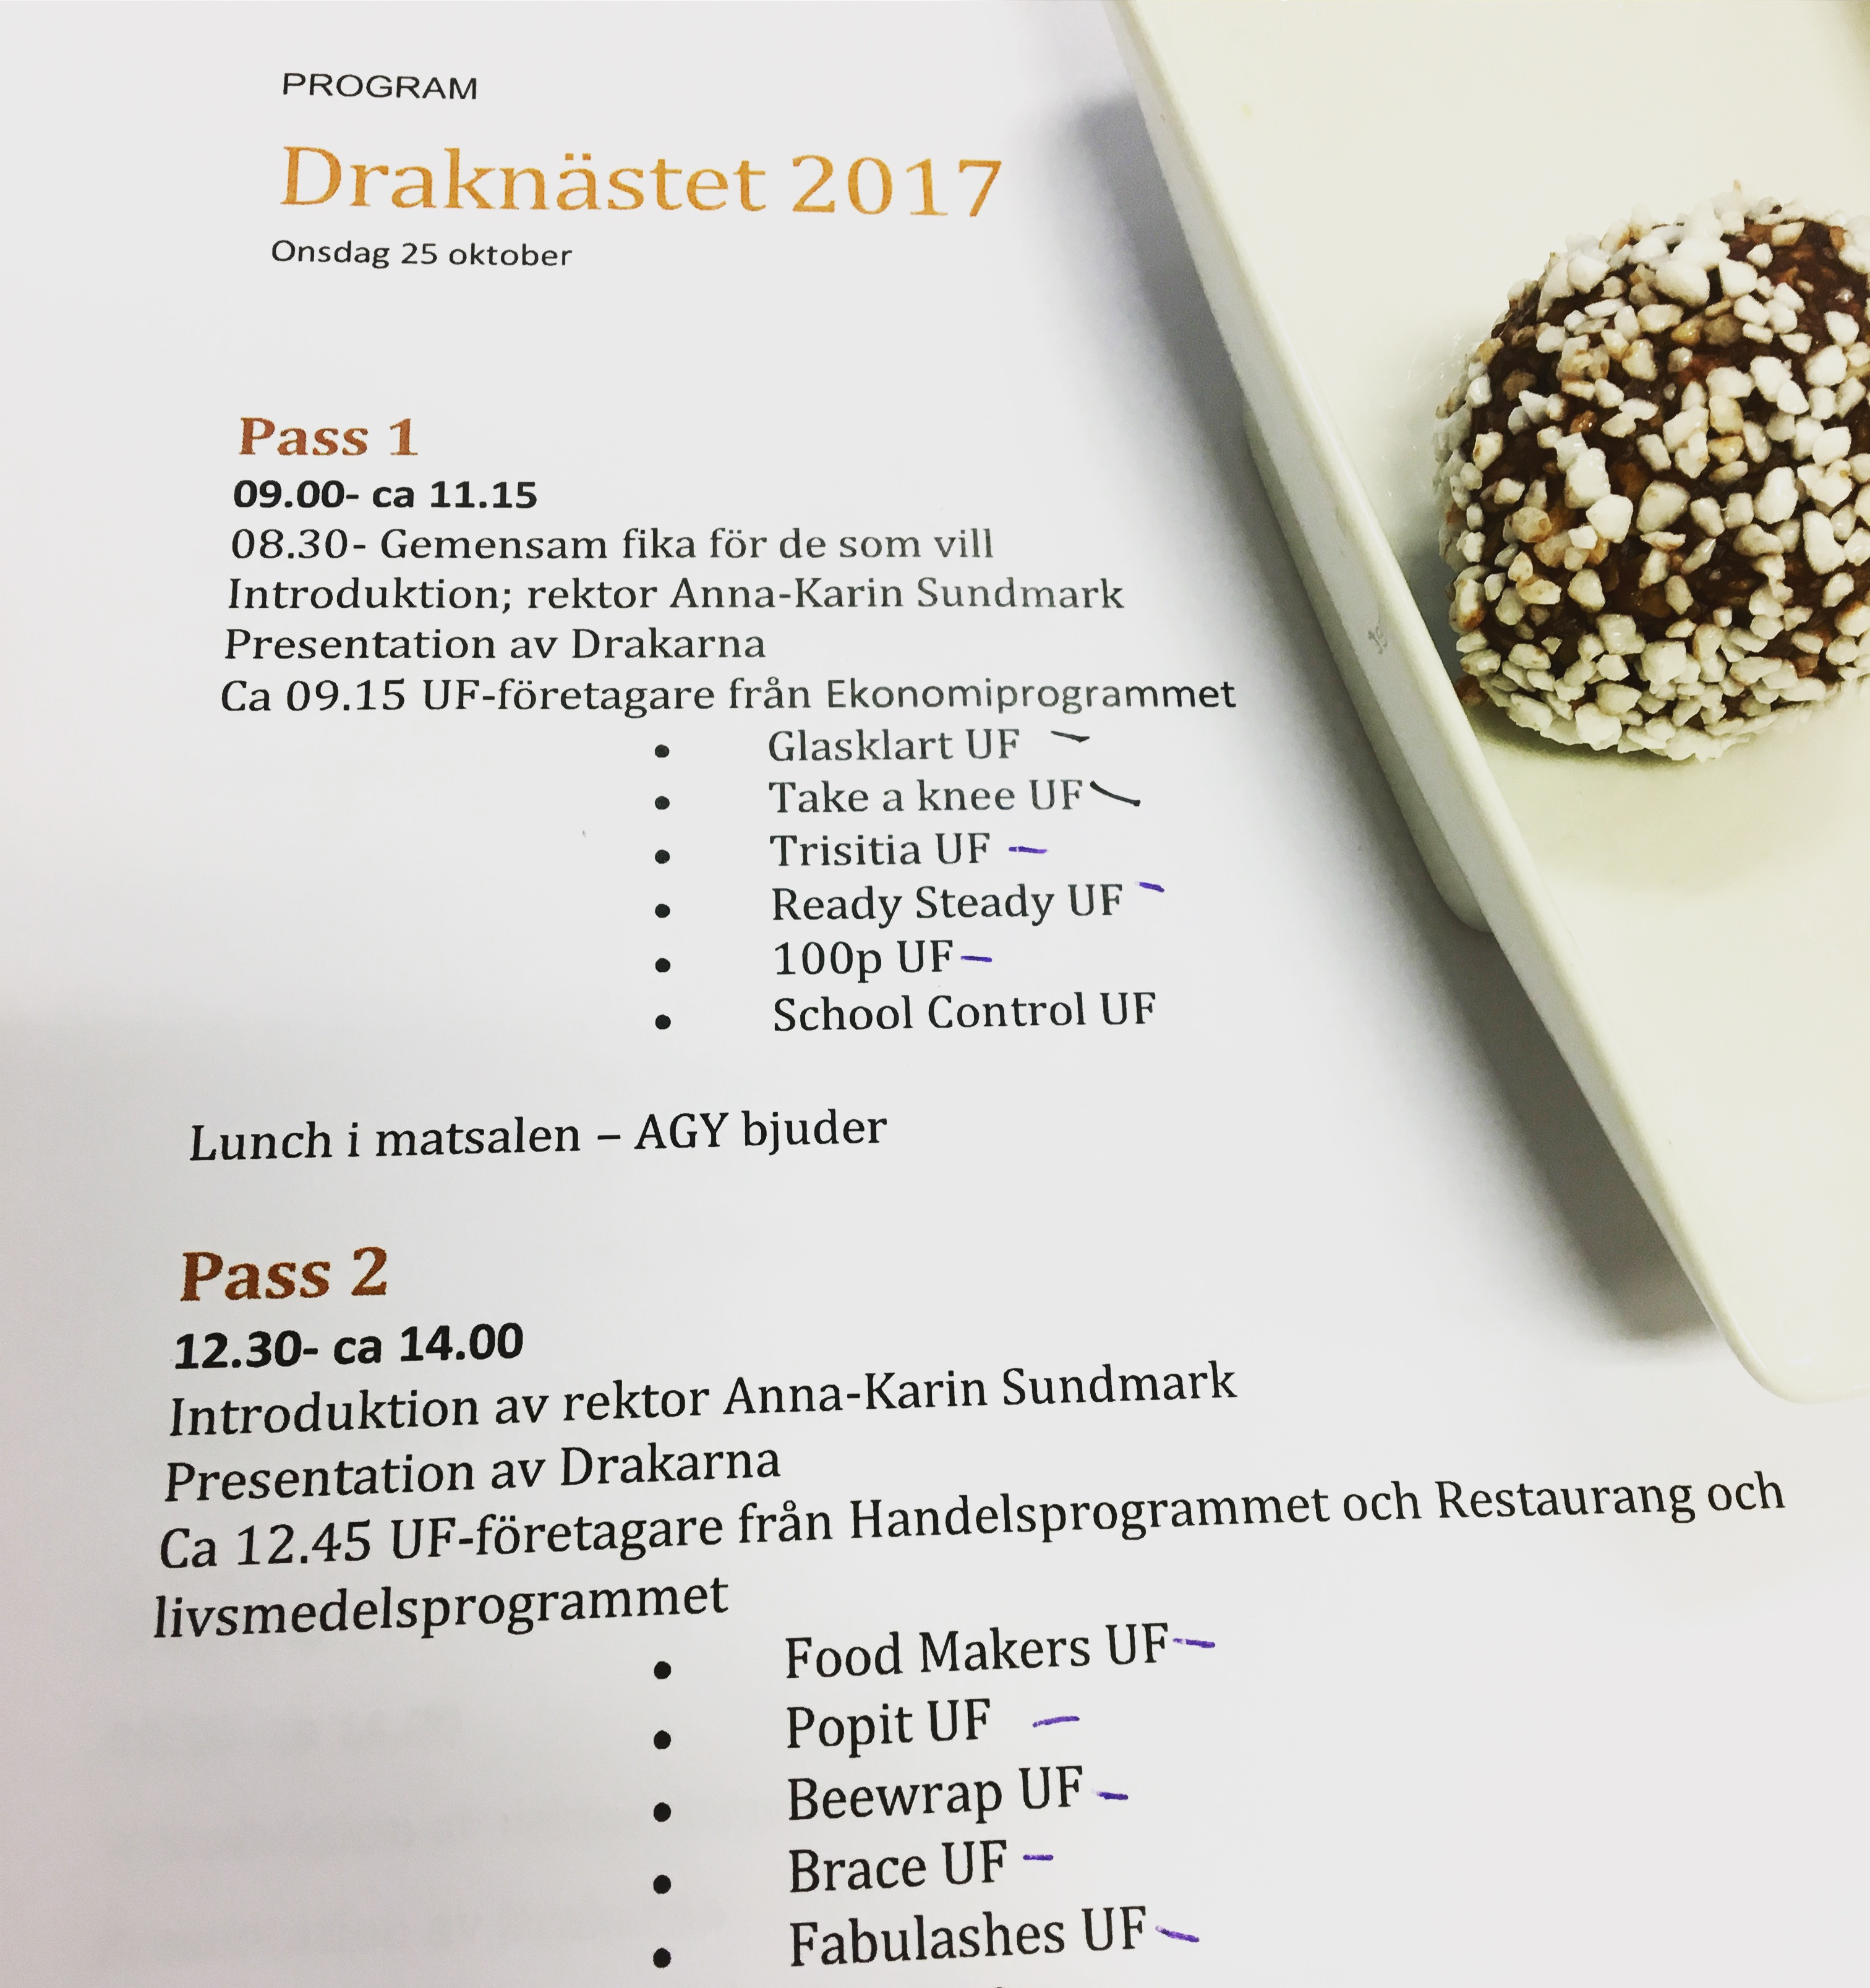 program Draknästet